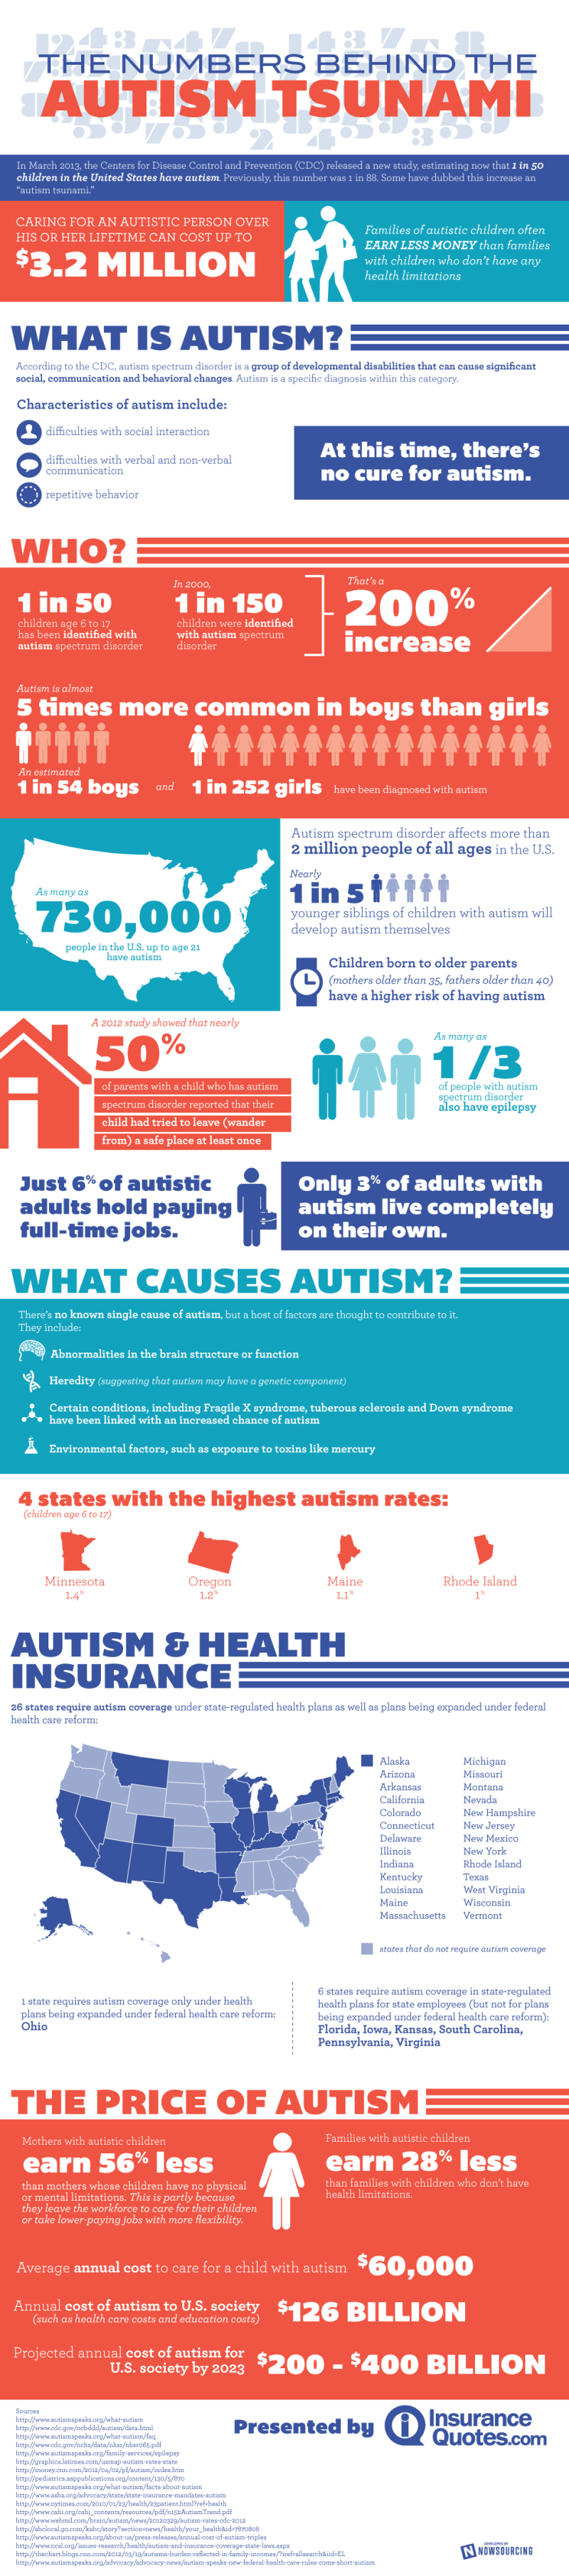 2. The Numbers behind the Autism Tsunami